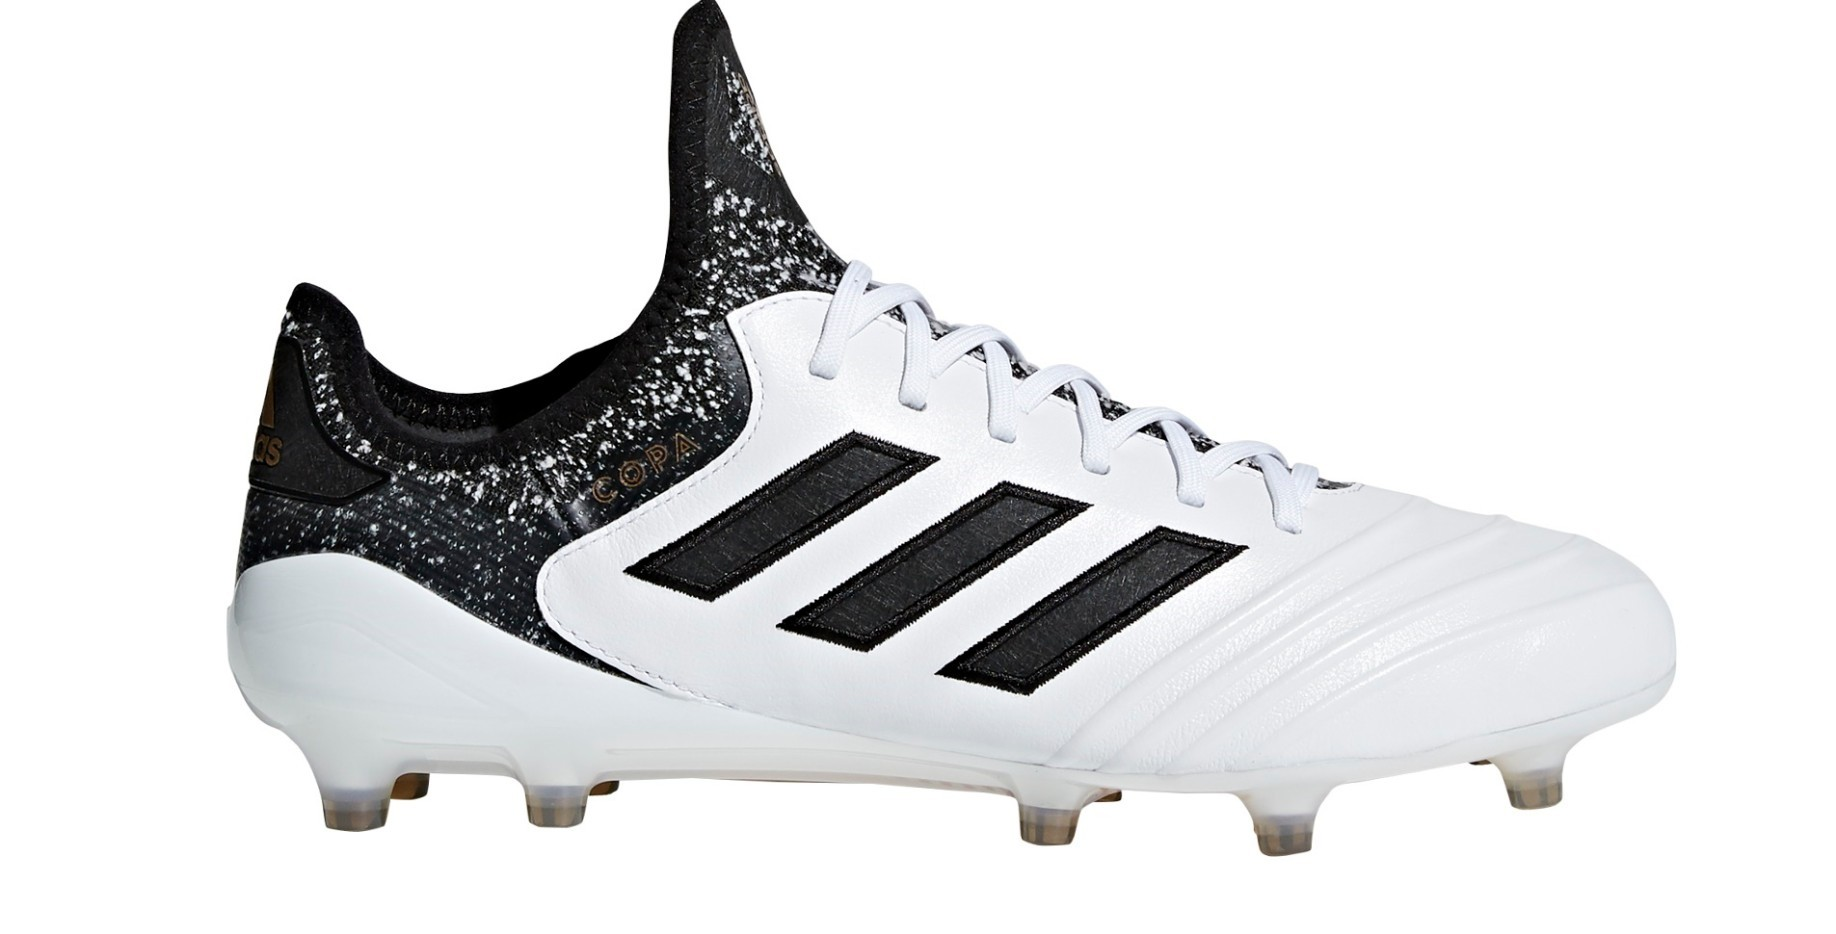 new product 82f9e 1ede7 Football boots Adidas Copa 18.1 FG Skystalker Pack colore White - Adidas -  SportIT.com